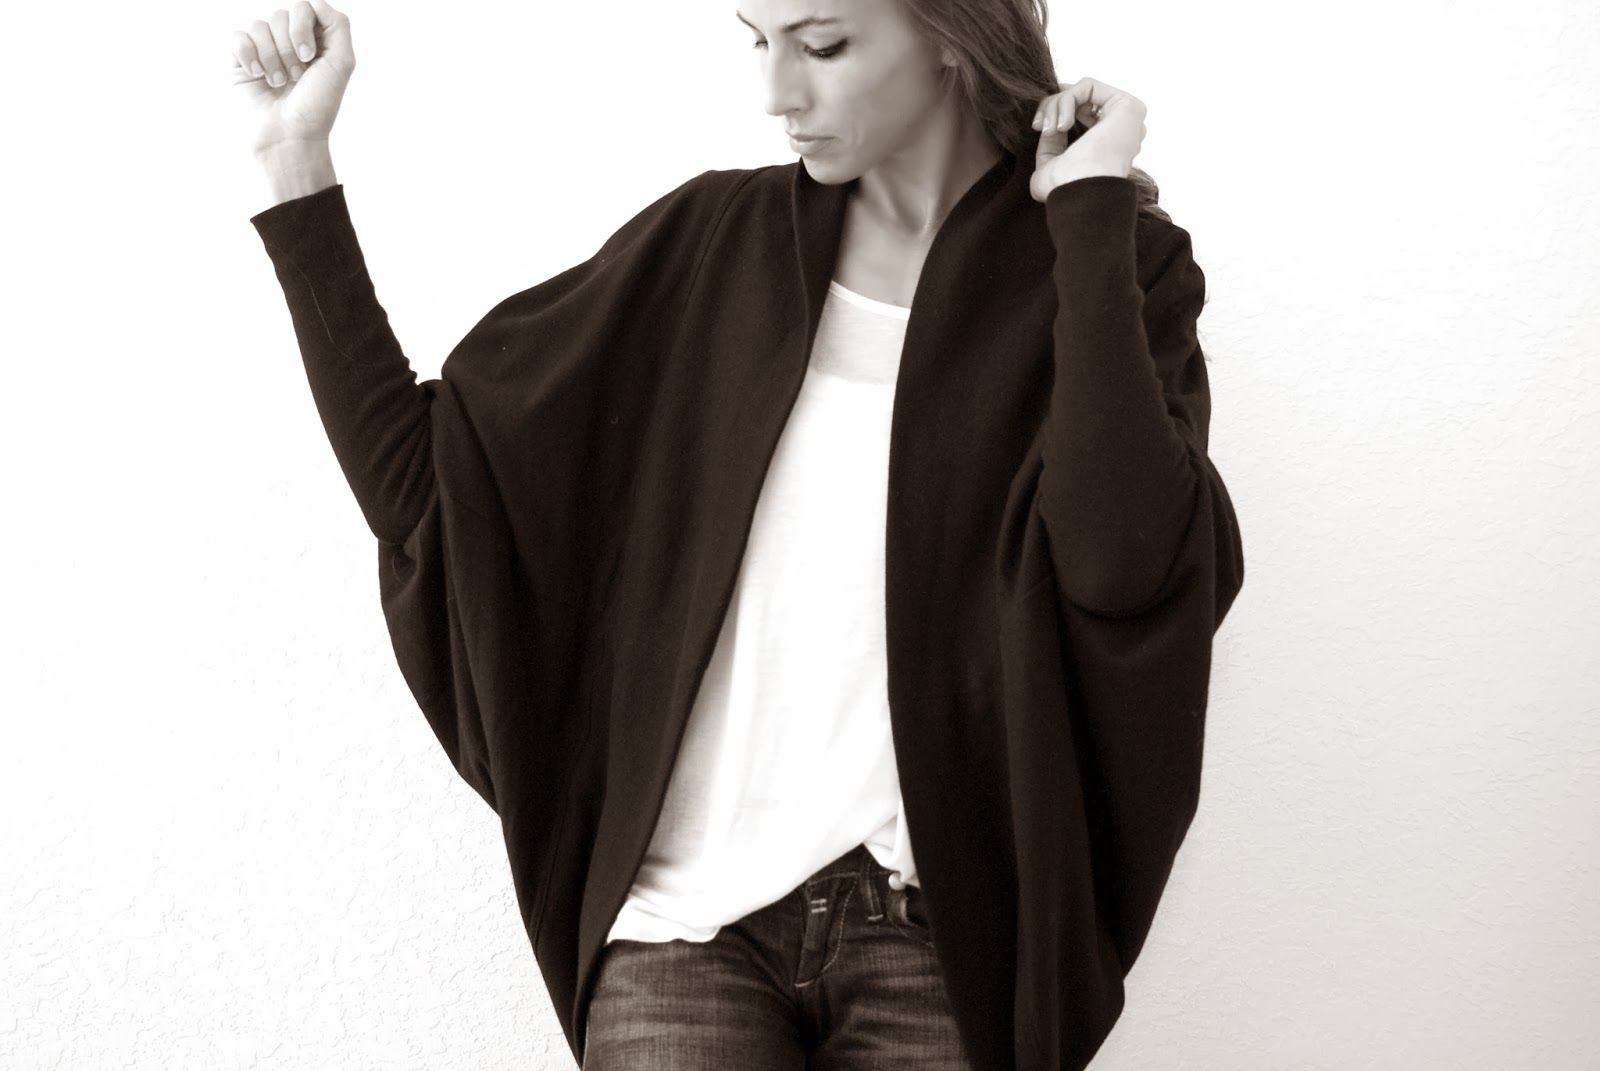 A woman wearing a black cardigan with a white tshirt